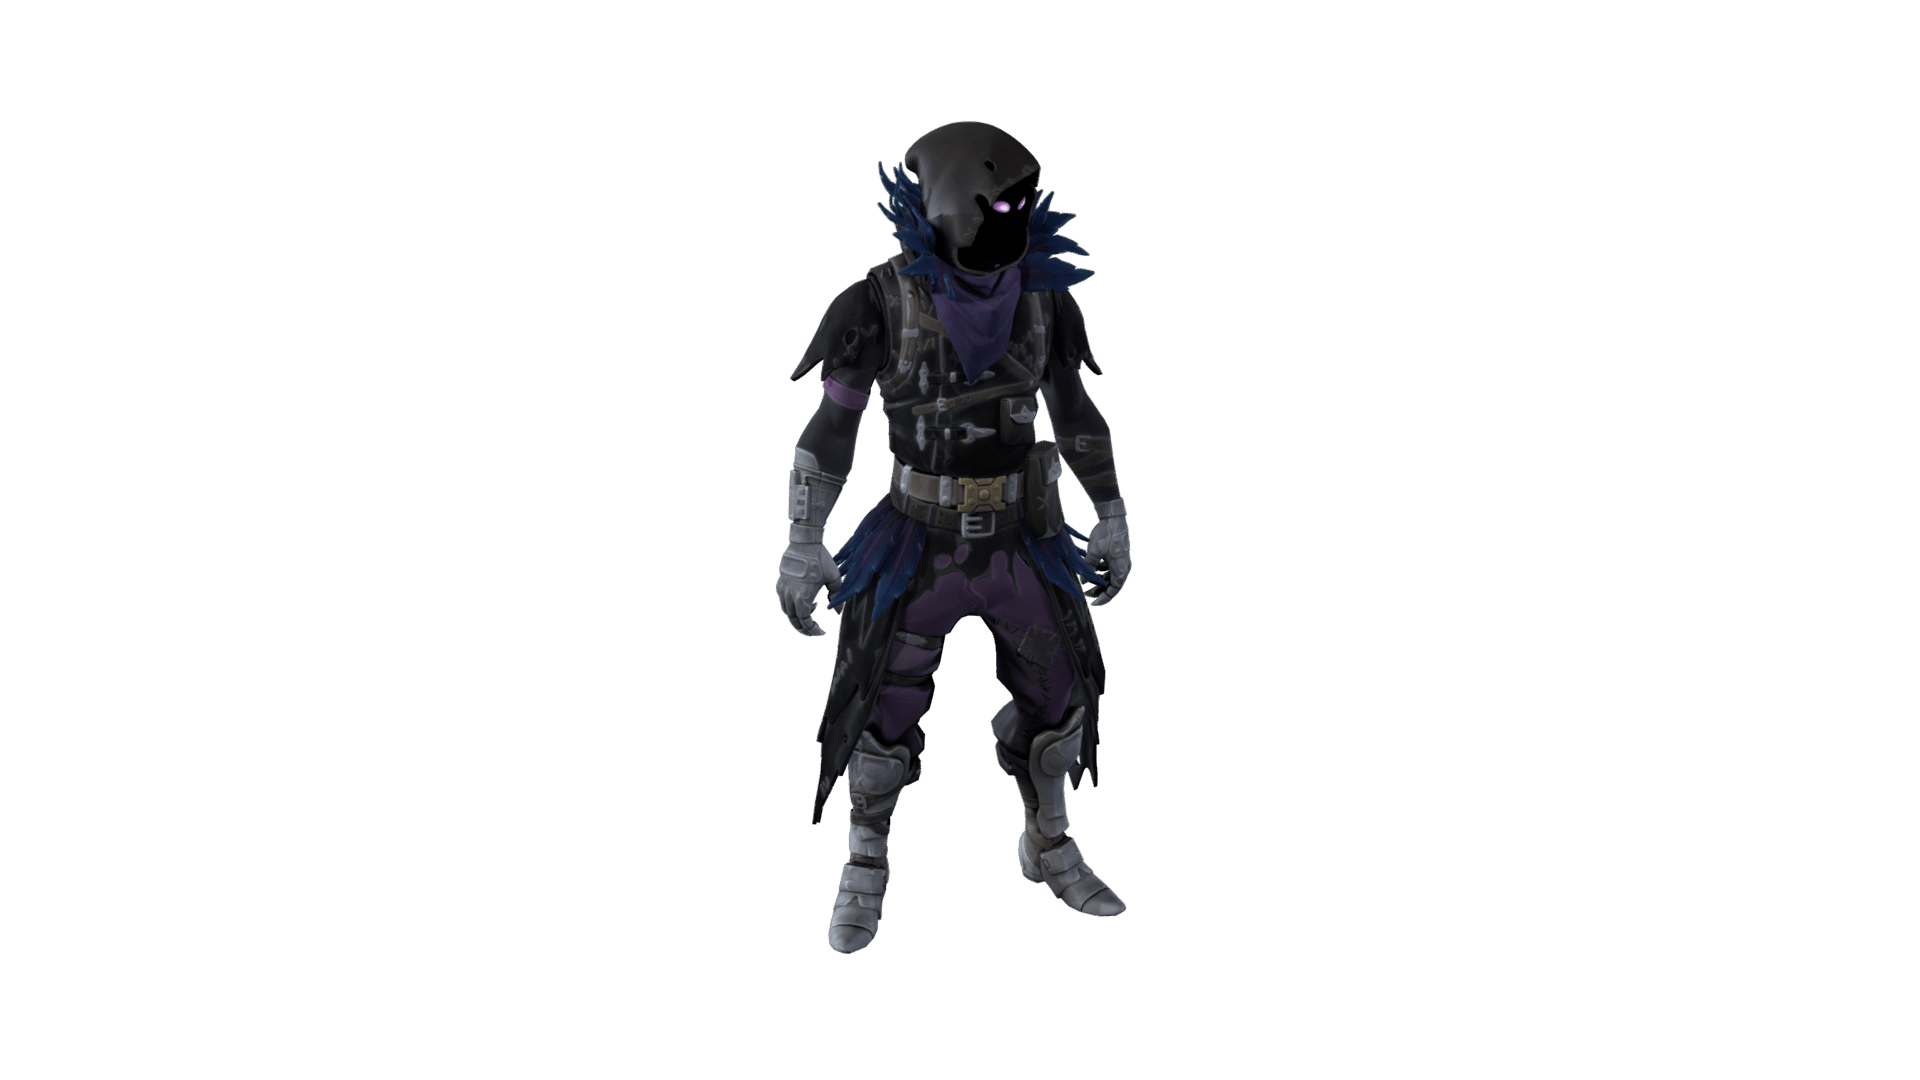 Fortnite raven png. Skin outfit info how